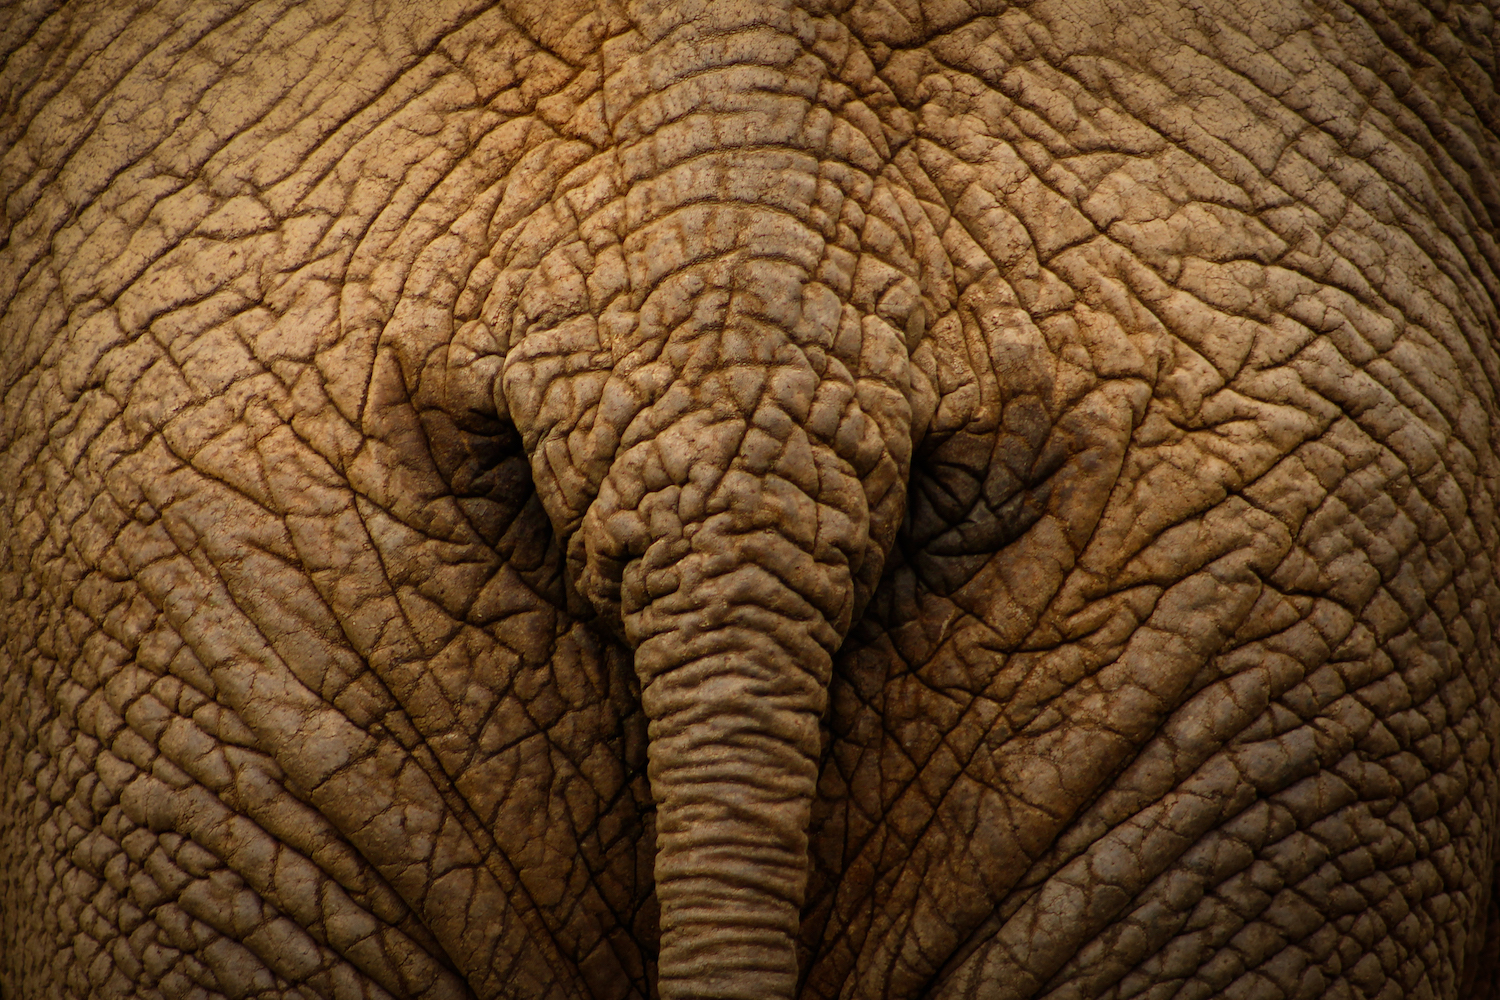 Elephant Rear, South Africa, Canon DSLR